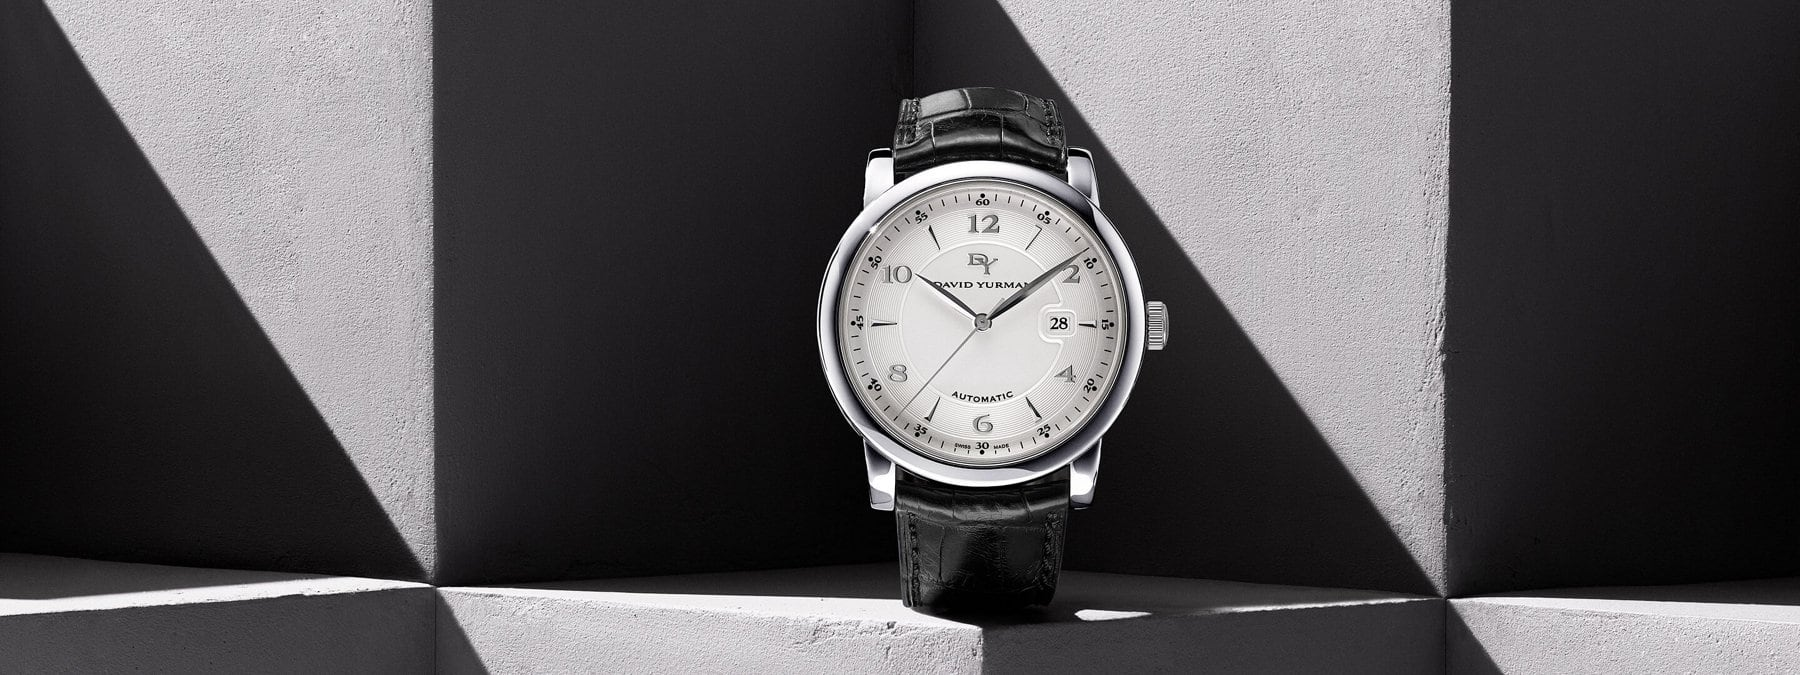 A color photograph shows a David Yurman men's Classic timepiece standing upright on its straps in front and on top of a gray stone surface with graphic shadows. The watch is crafted with a stainless-steel case, automatic movement and a matte alligator strap.